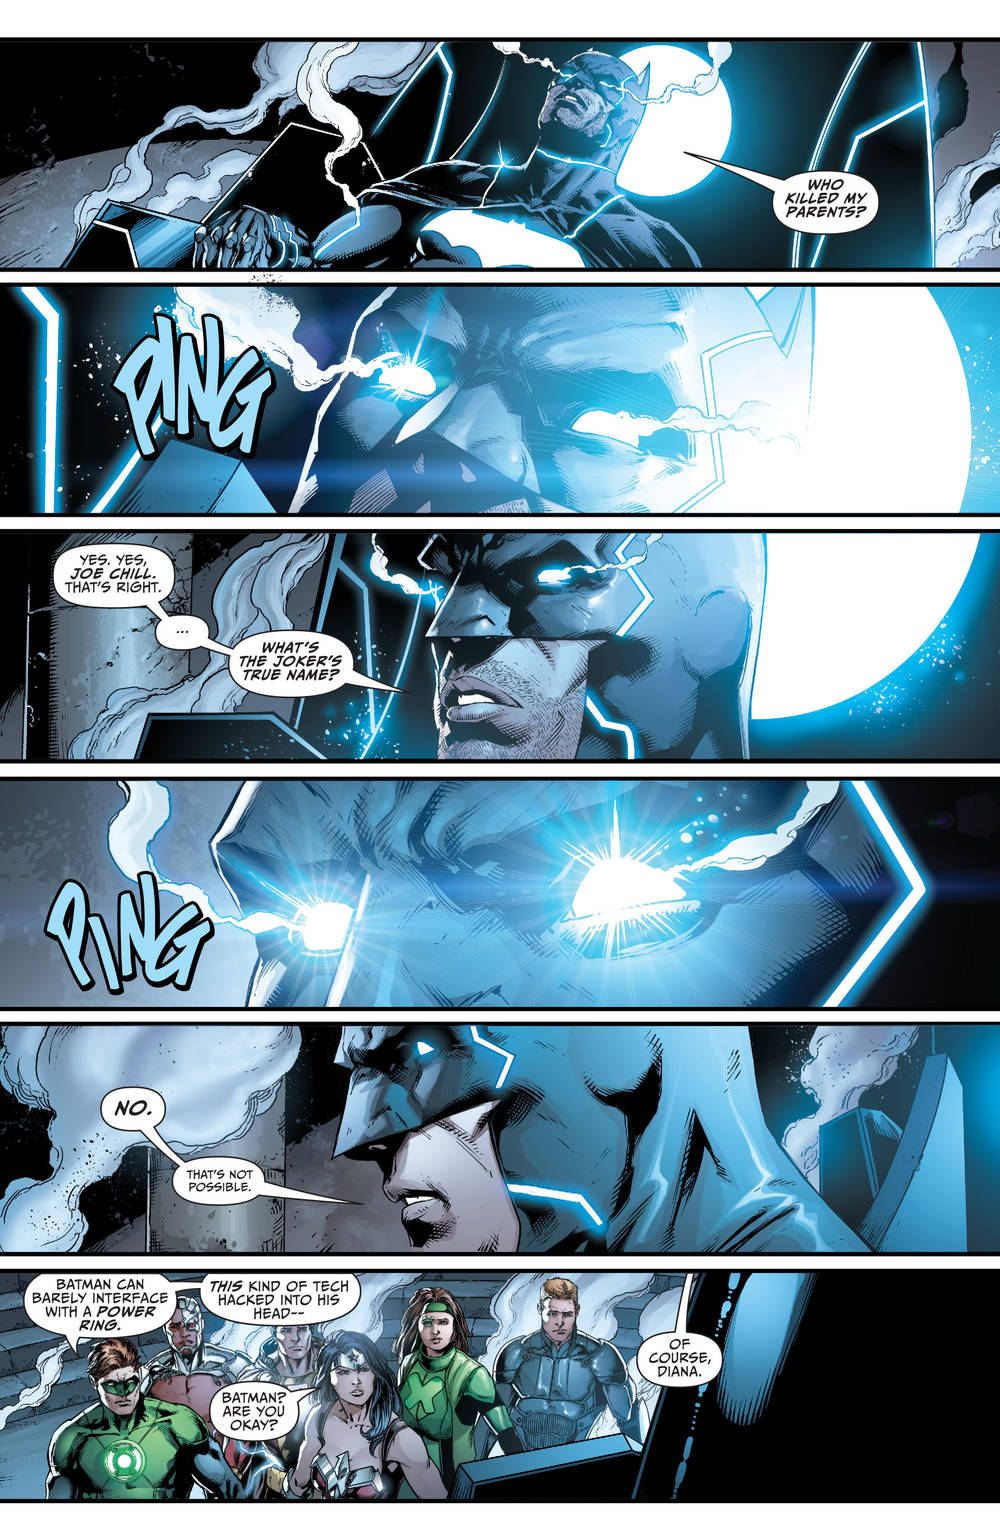 ... Justice League #42 Darkseid War 2 Spoilers 6